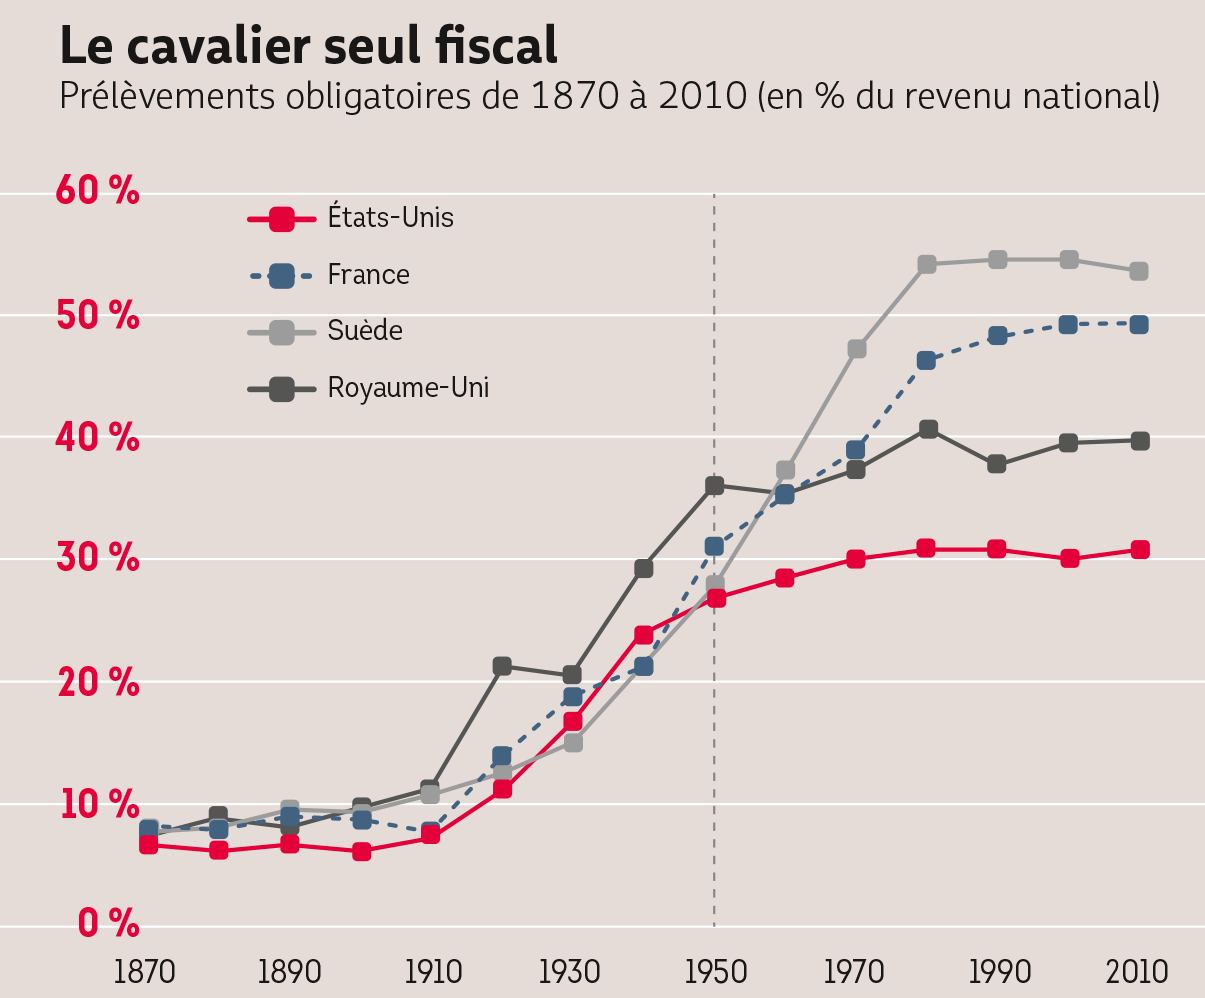 lecavalierseulfiscal.png